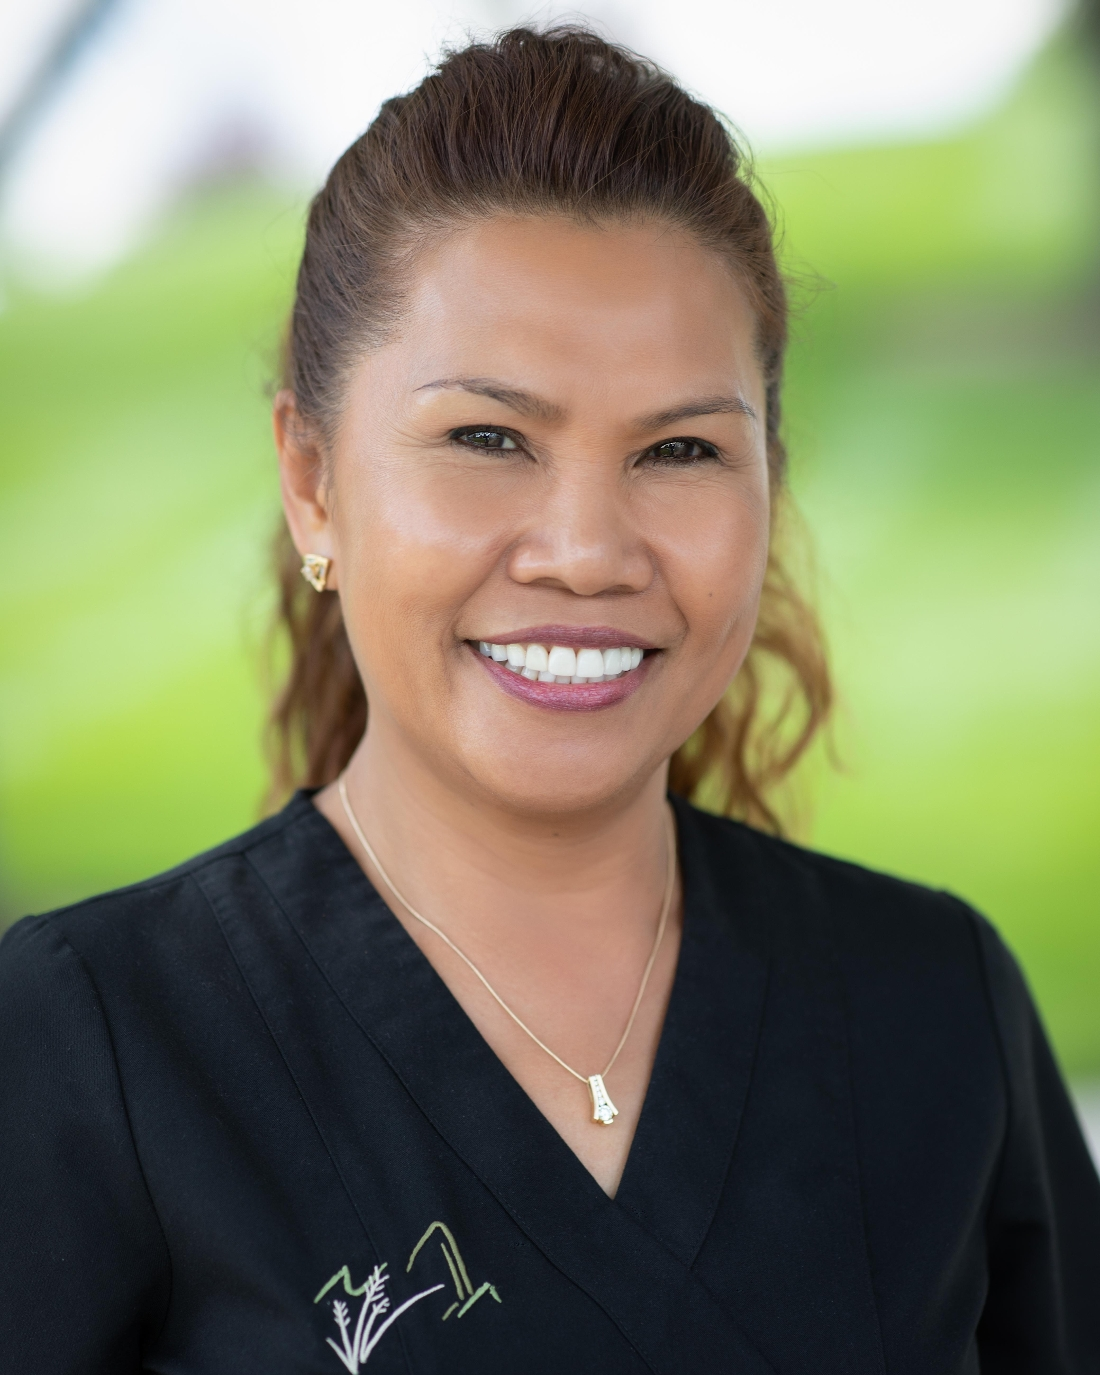 Vilma Ware | Dental Assistant | Fleischmann Family Dentistry | Broomfield, CO